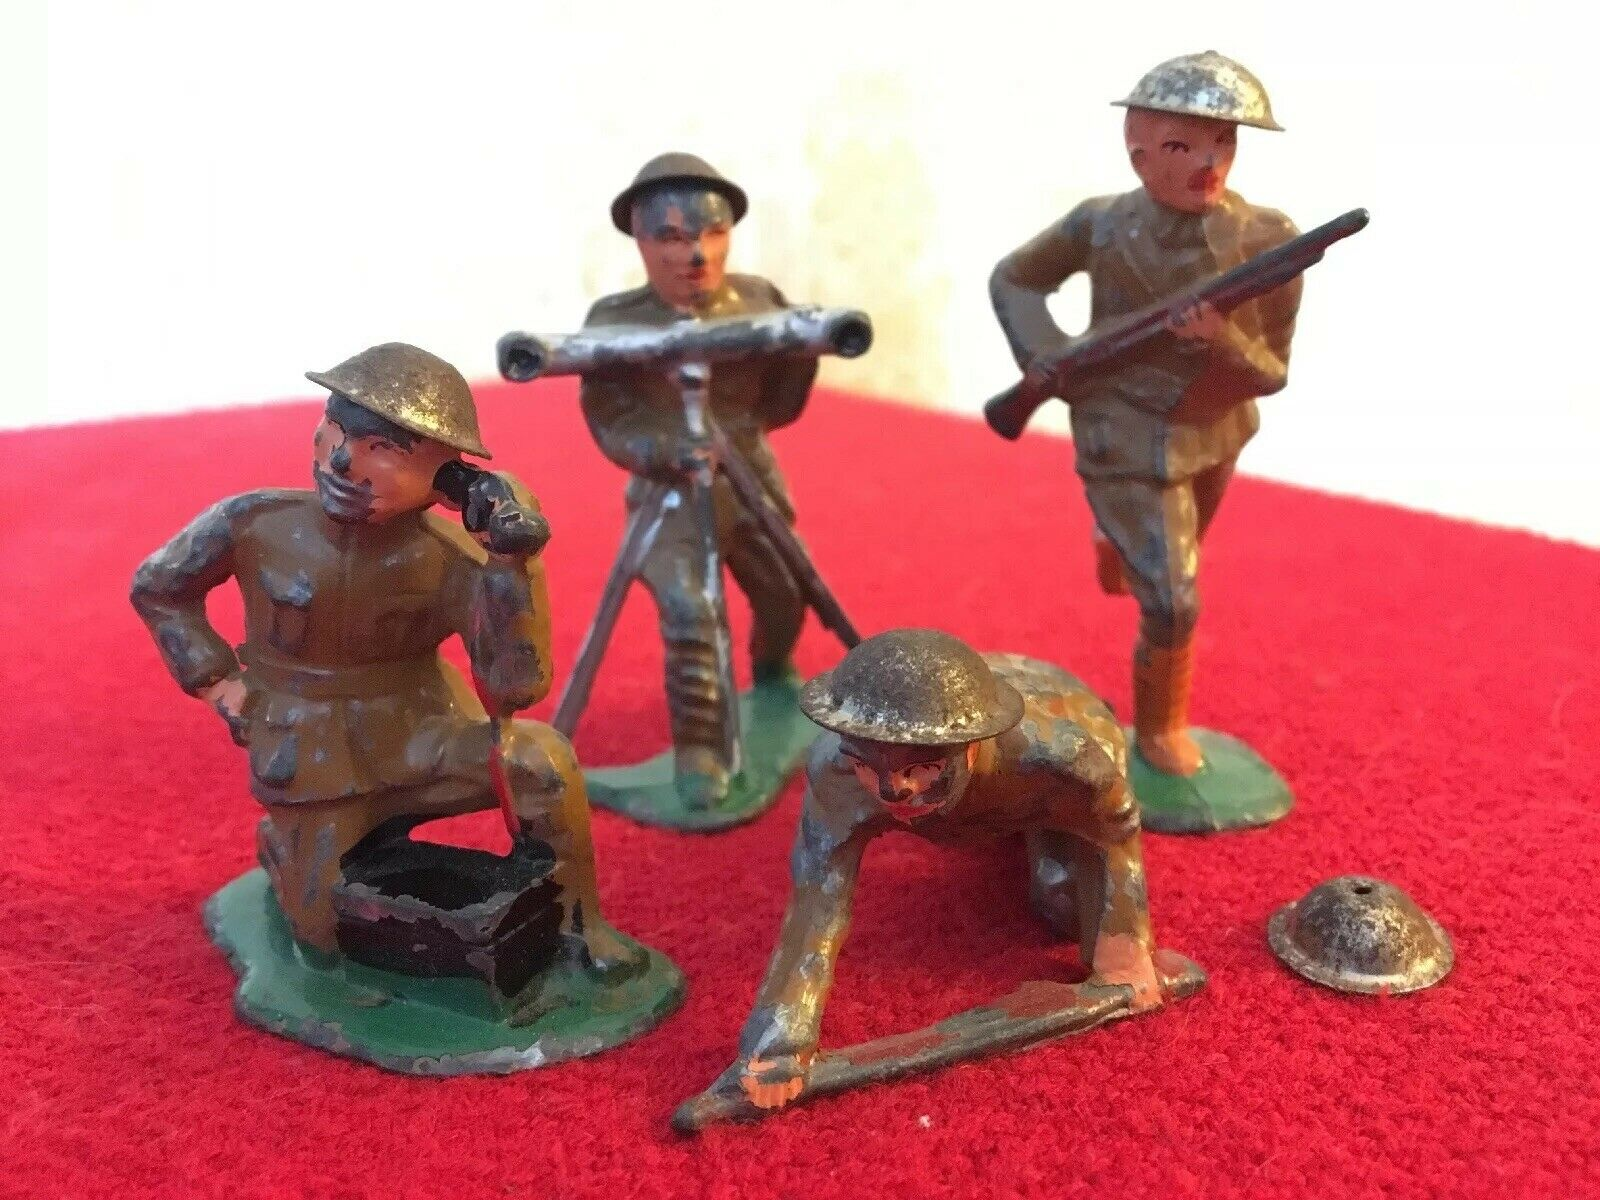 4 X BARCLAY MANOIL Lead Soldier Toy RANGE FINDER PHONE Crawl Running (14)